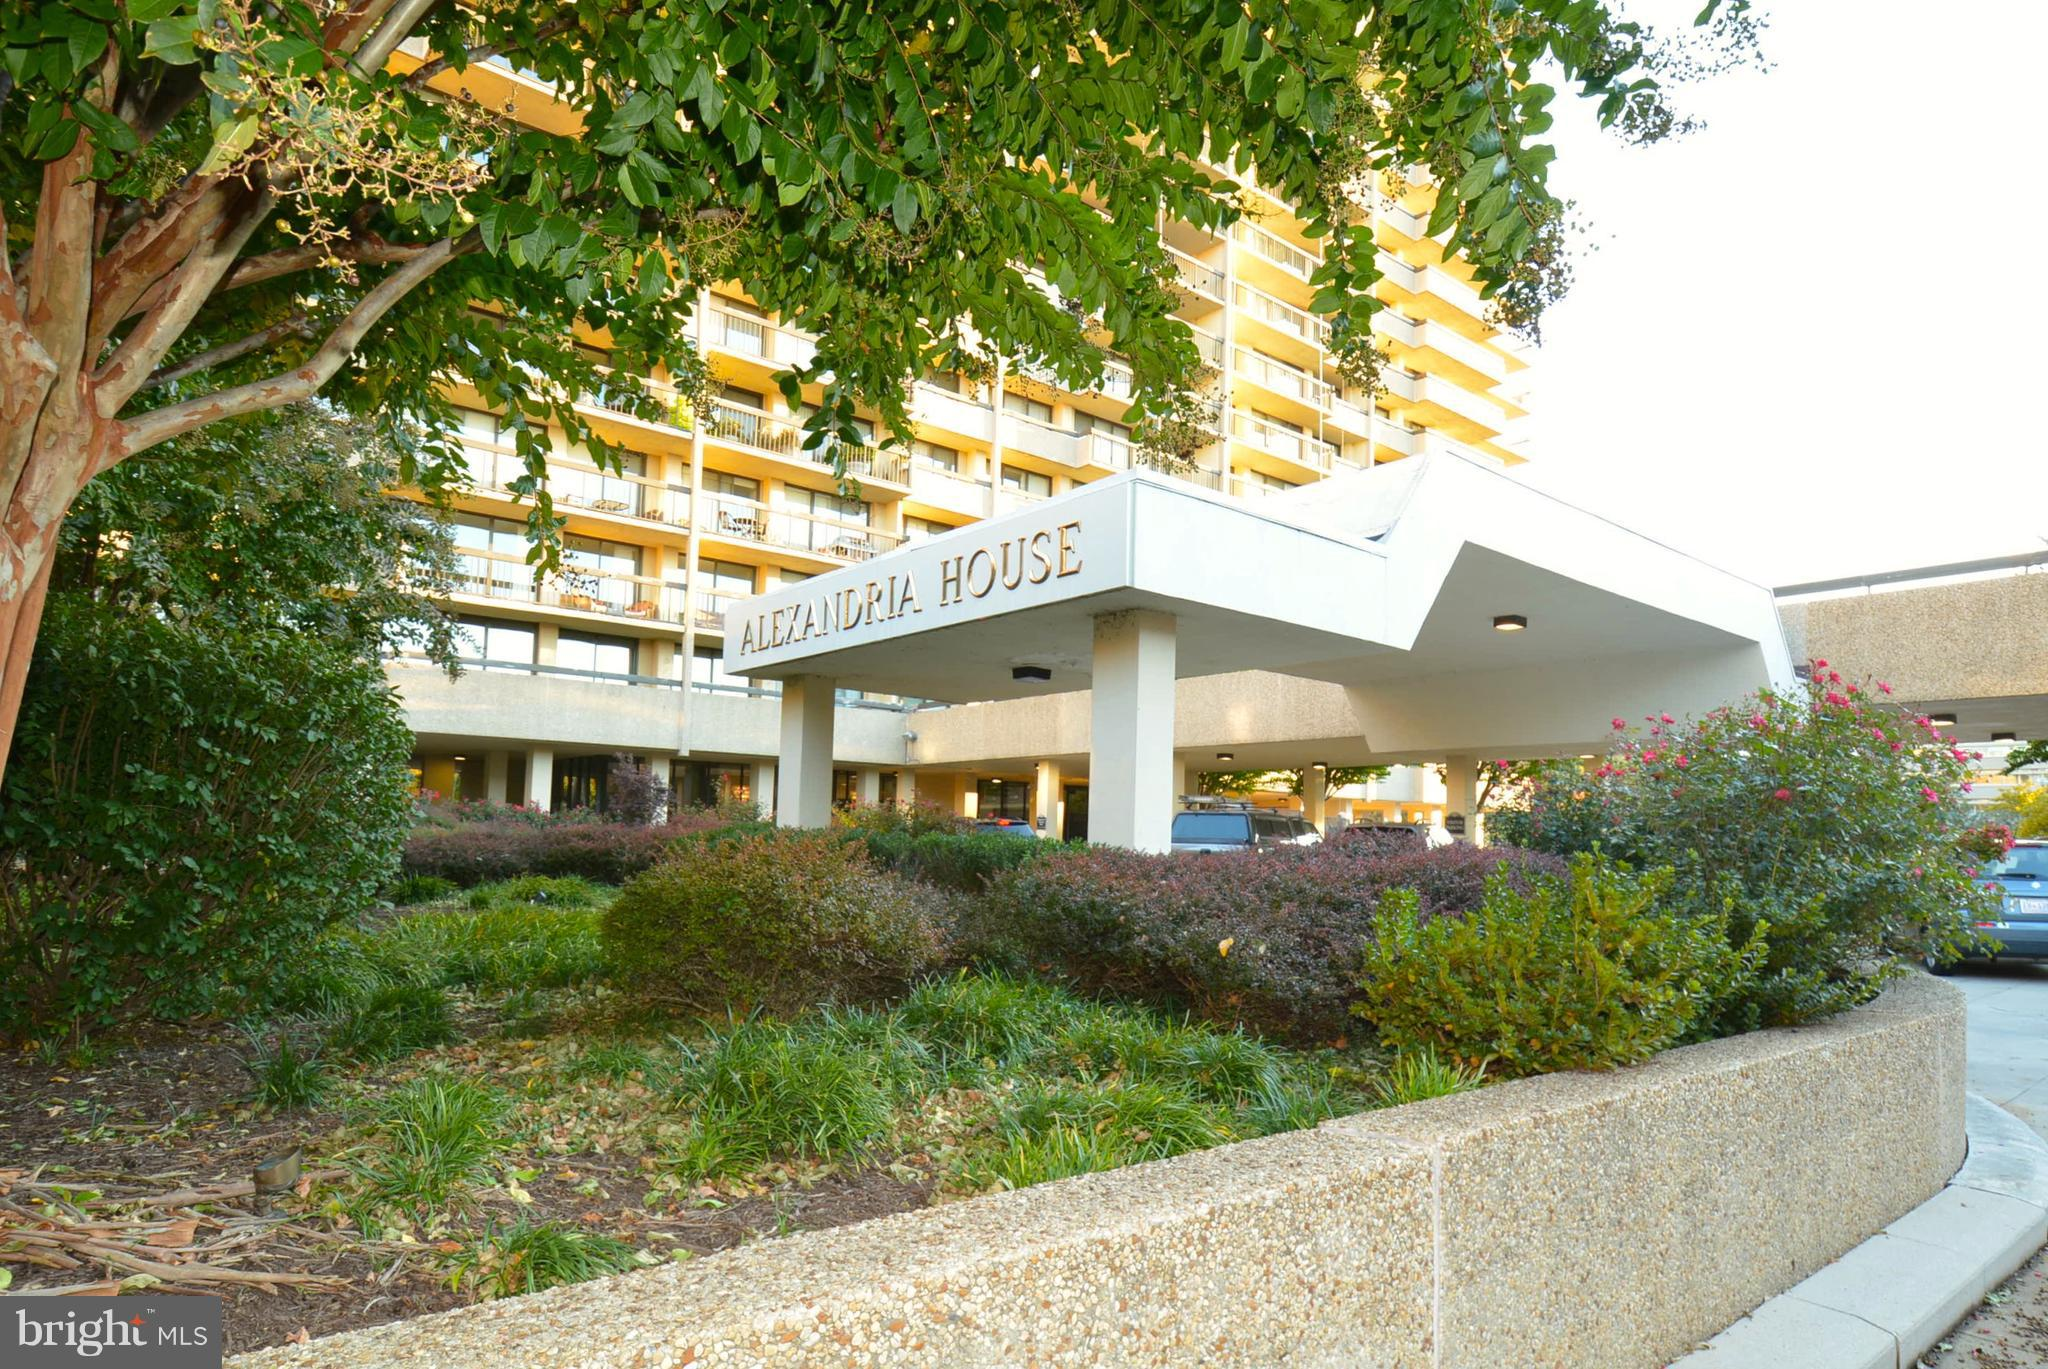 Spacious 2 bedroom, 2 bath unit w/ 2 underground parking spaces.  A very desirable condominium, Alexandria House is well  located in Old Town minutes from the Potomac waterfront, grocery stores, shops & metro. 24 hour concierge service, a swimming pool, a party room w\fantastic views & an on-site manager complete the picture. Owners are offering a third parking space for an additional $30,000.00. Lockbox at Front Desk.  .